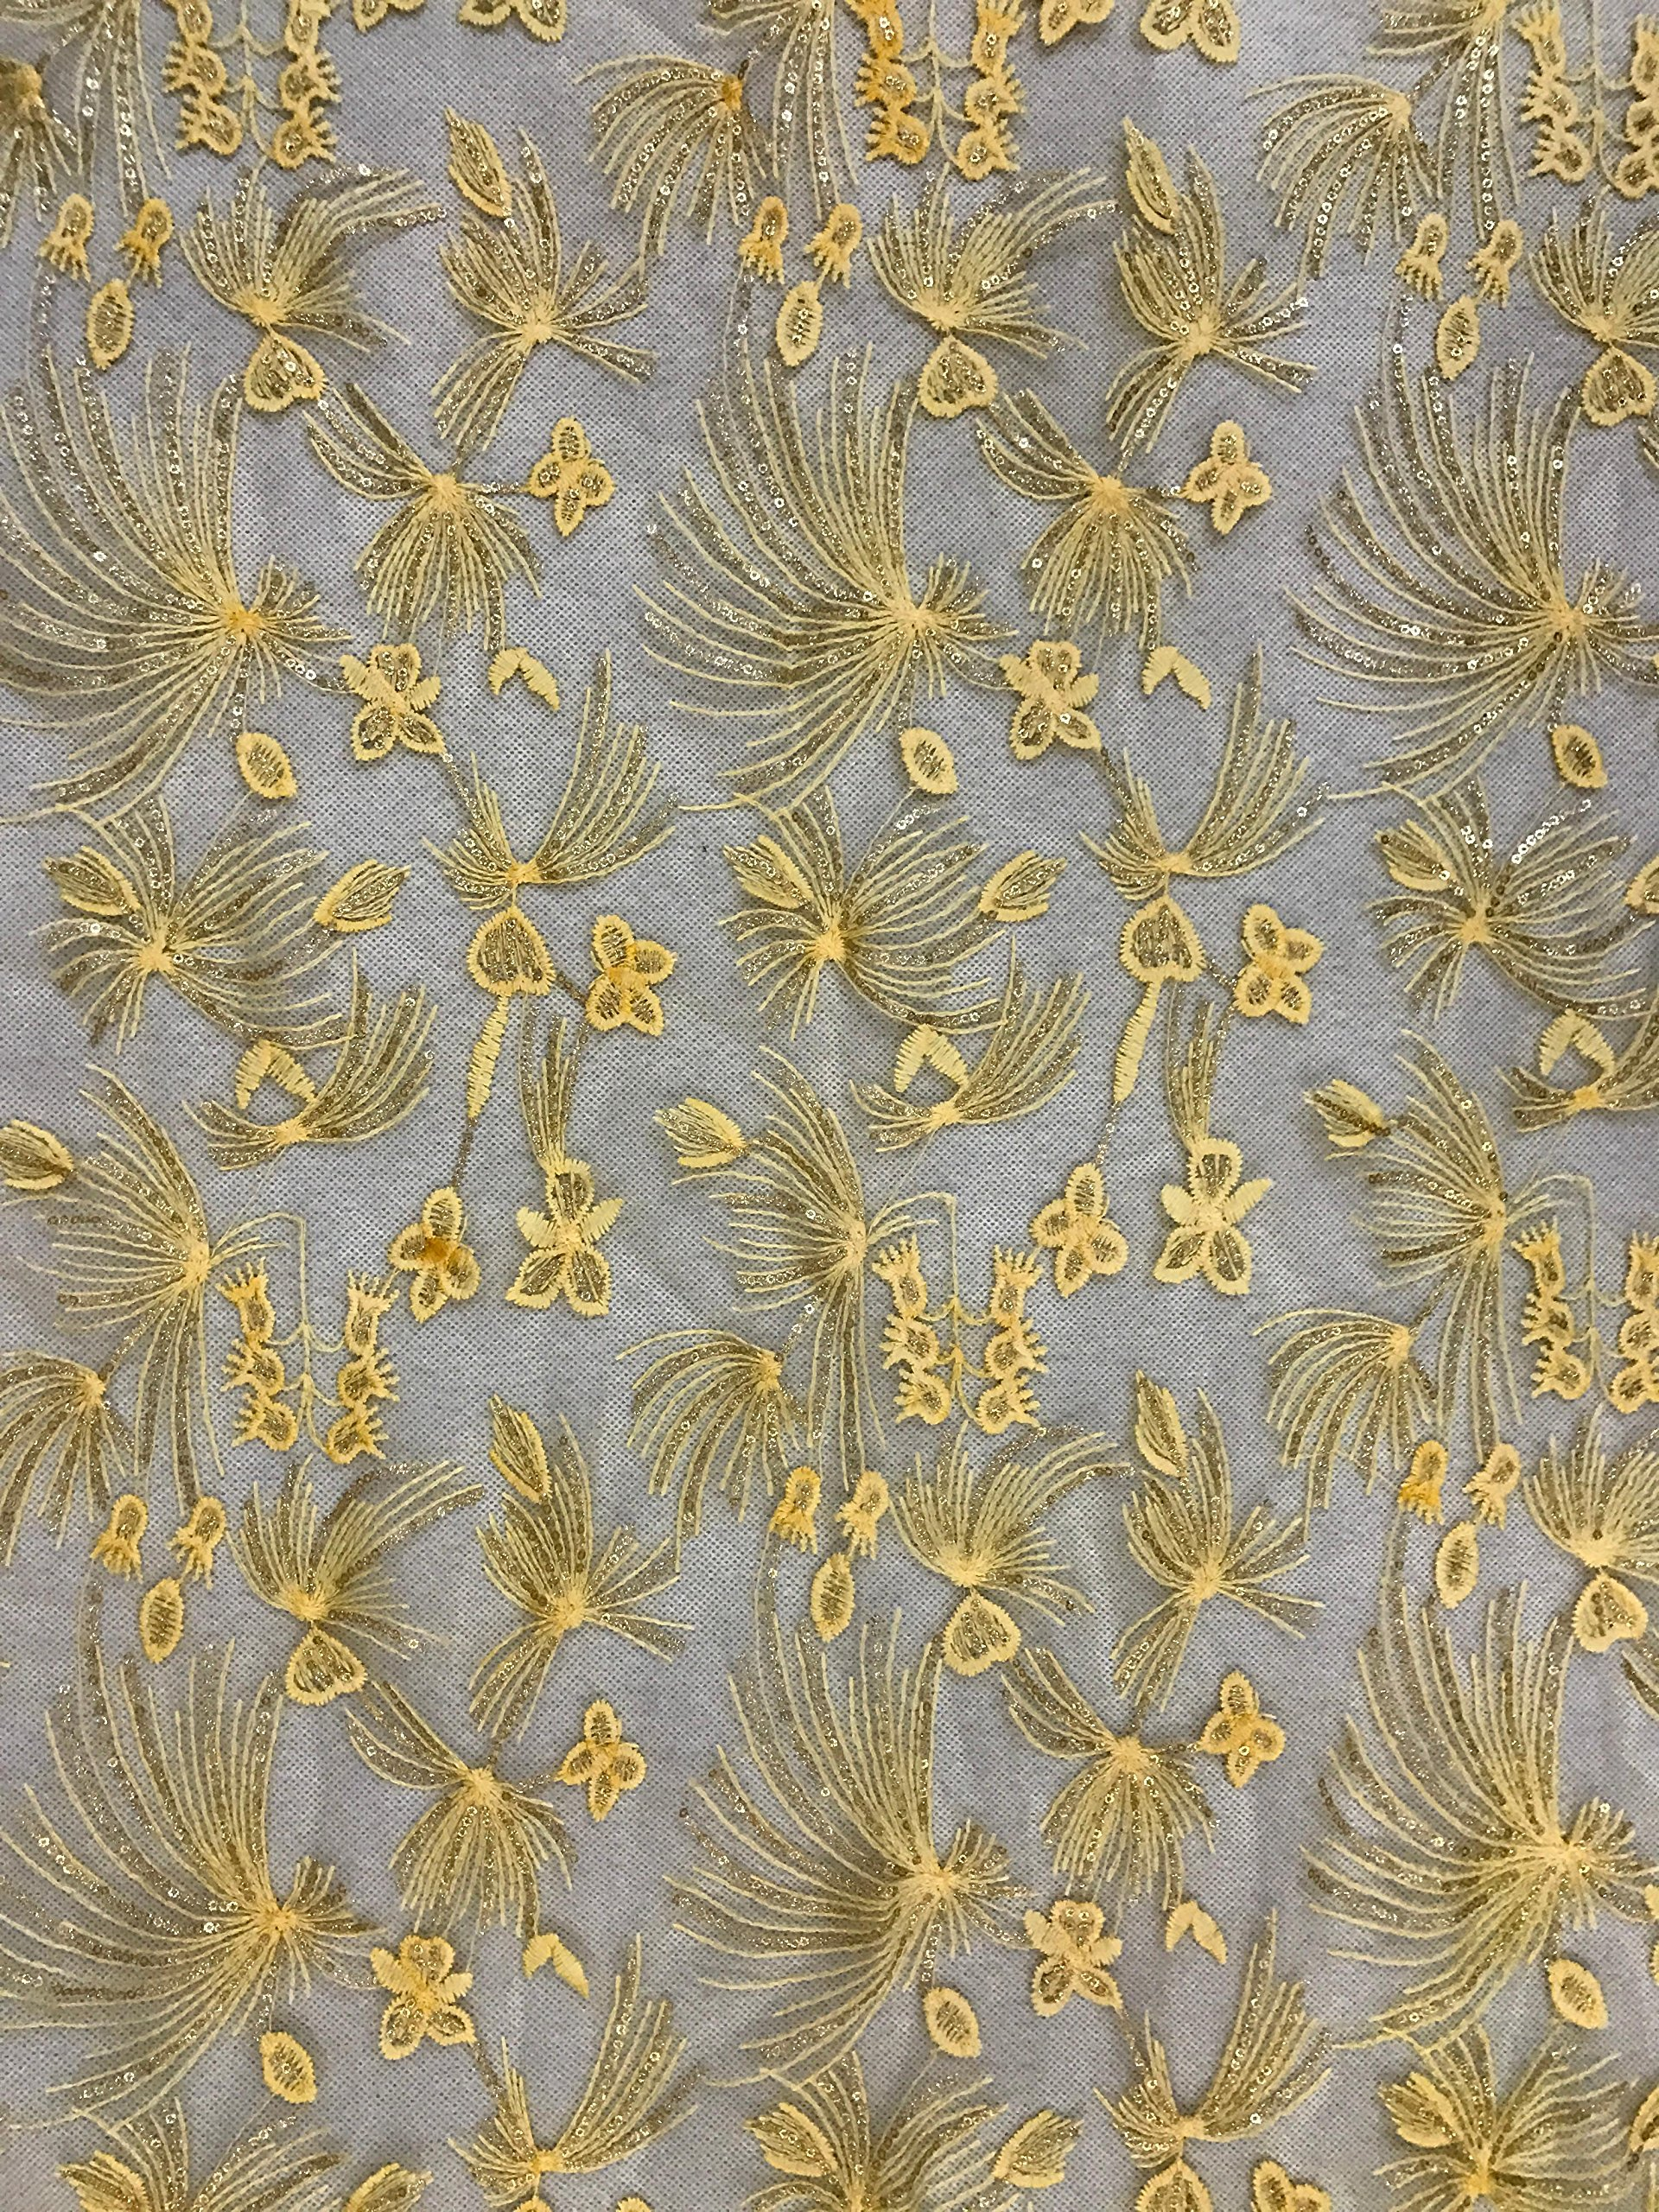 Fongbay African Lace Fabric 5 Yards Milk Shredded Sequins Lace Embroidered Fabrics Suitable for Party Wedding Dress Short Skirt or Handmade DIY,Yellow by Fongbay